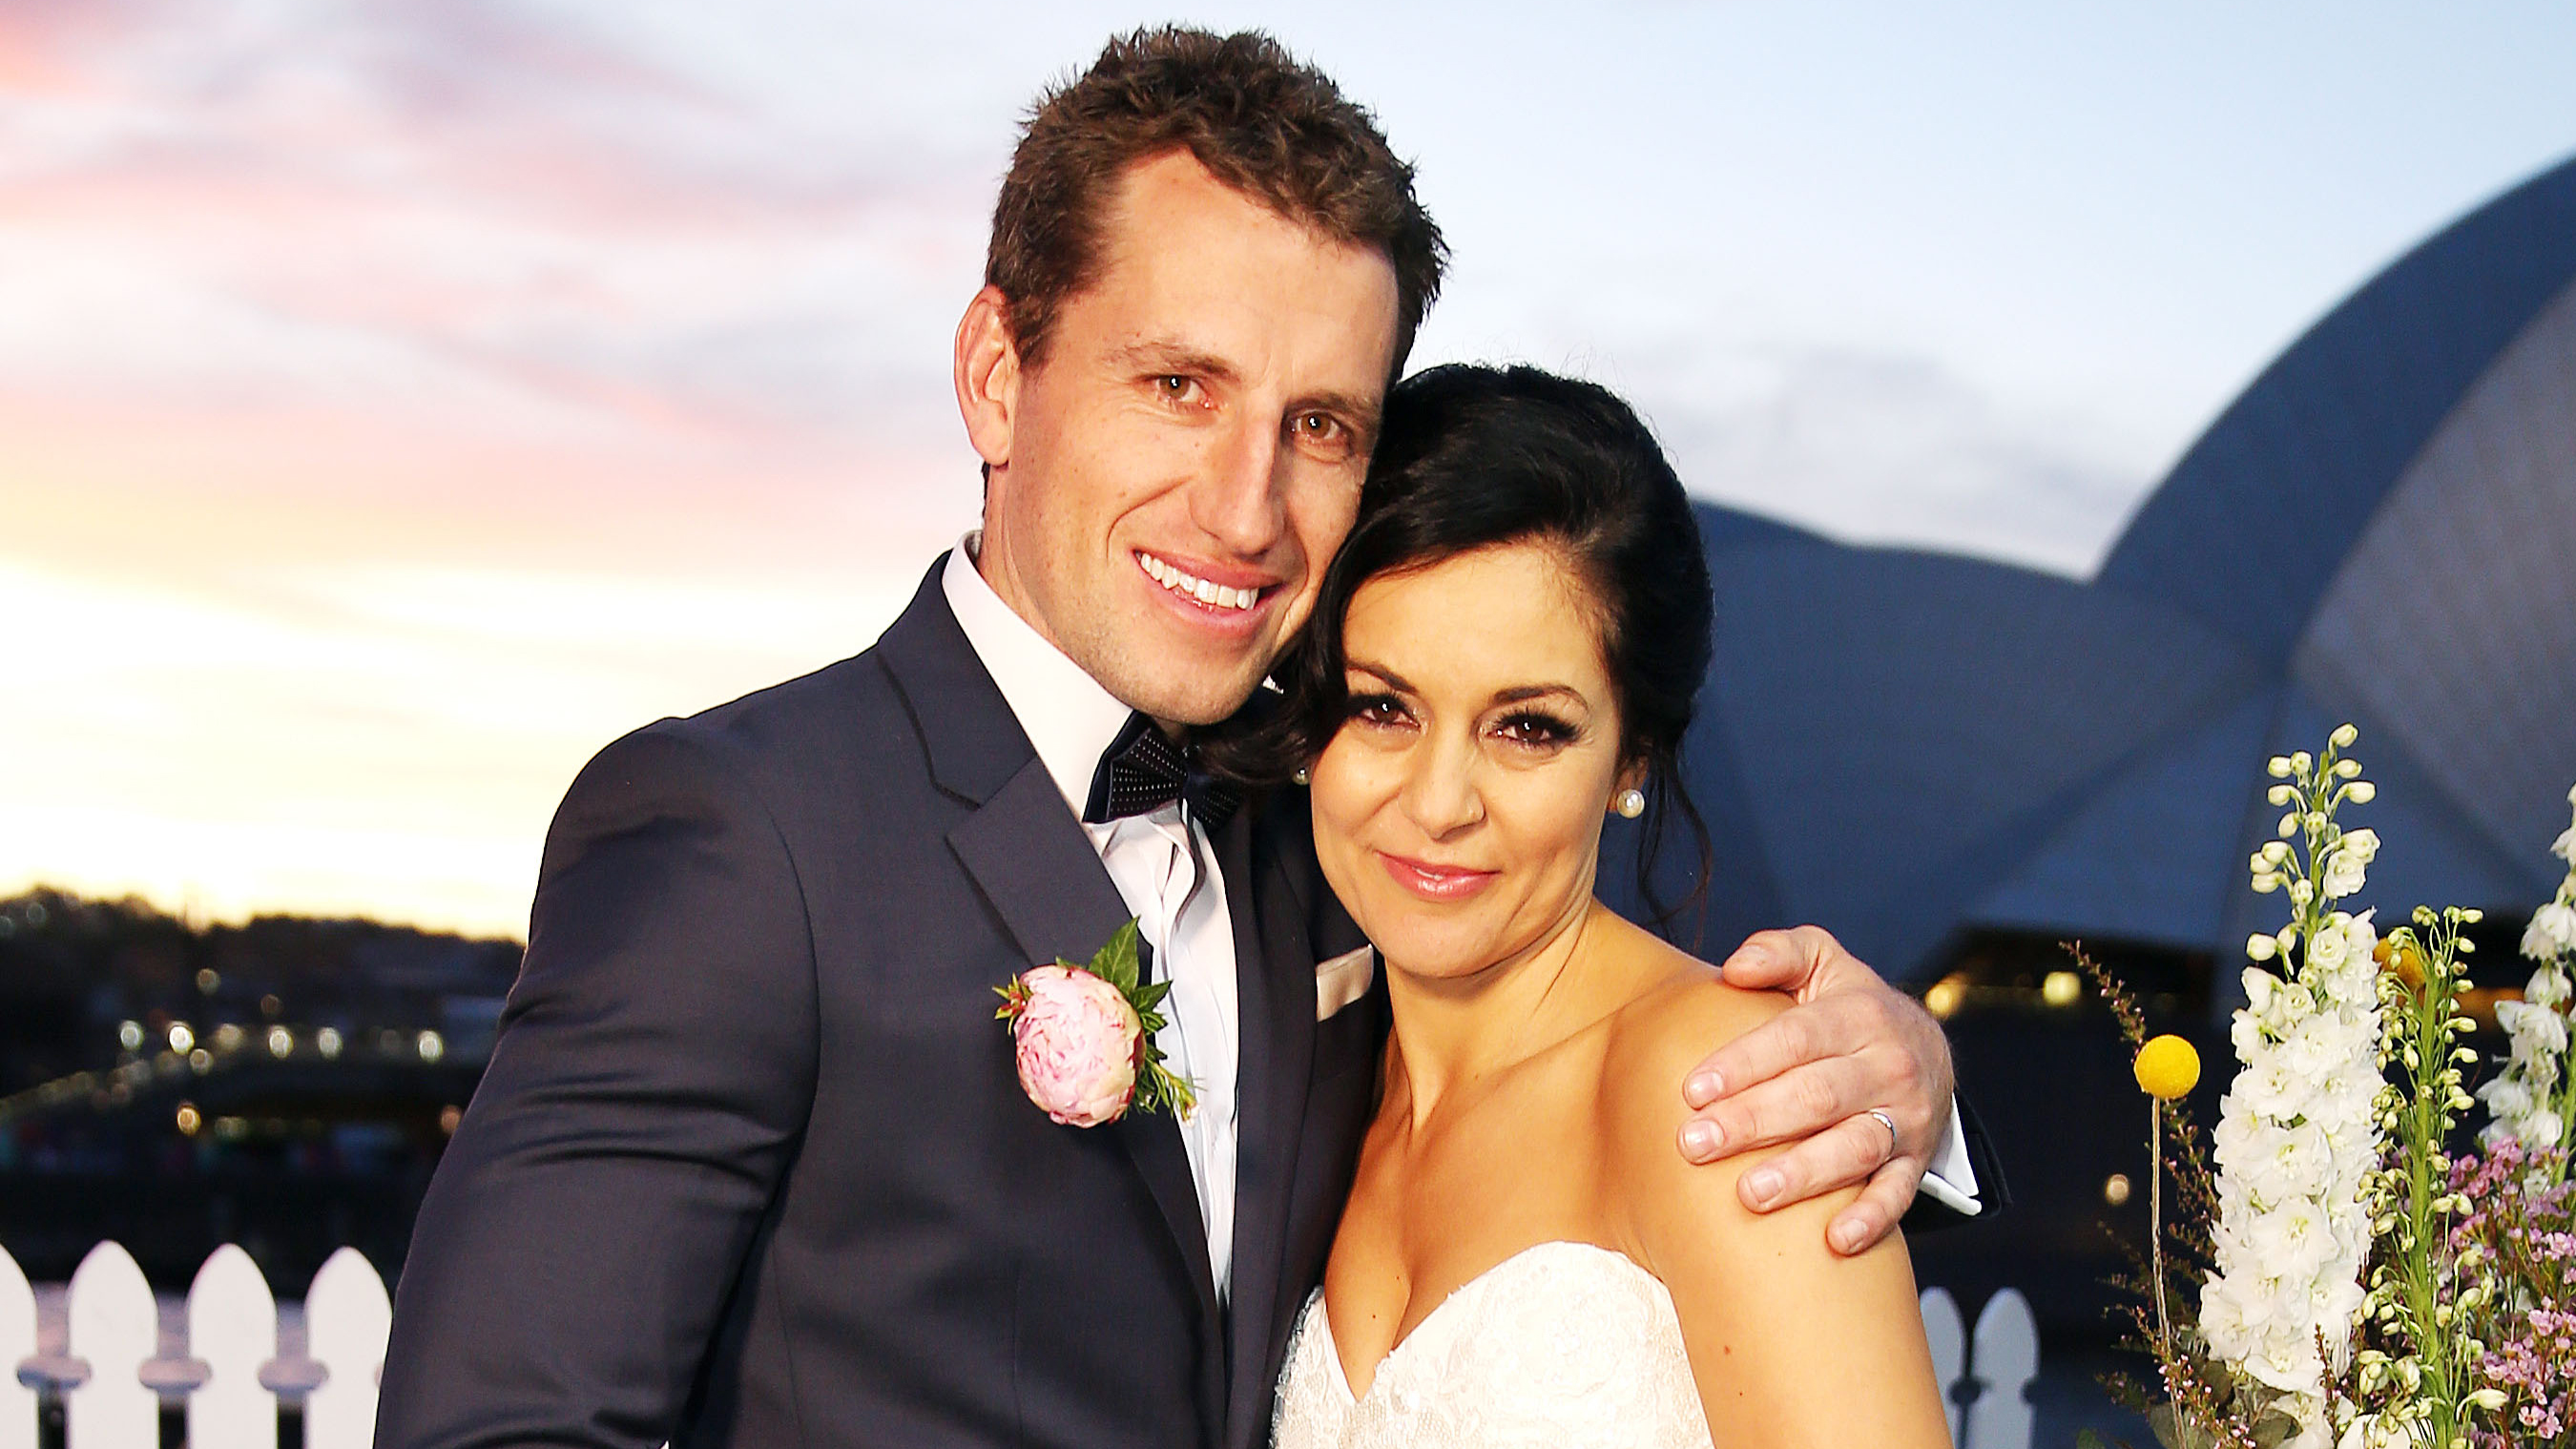 Christie and Mark begin to look #flawless in front of the Sydney Opera House.